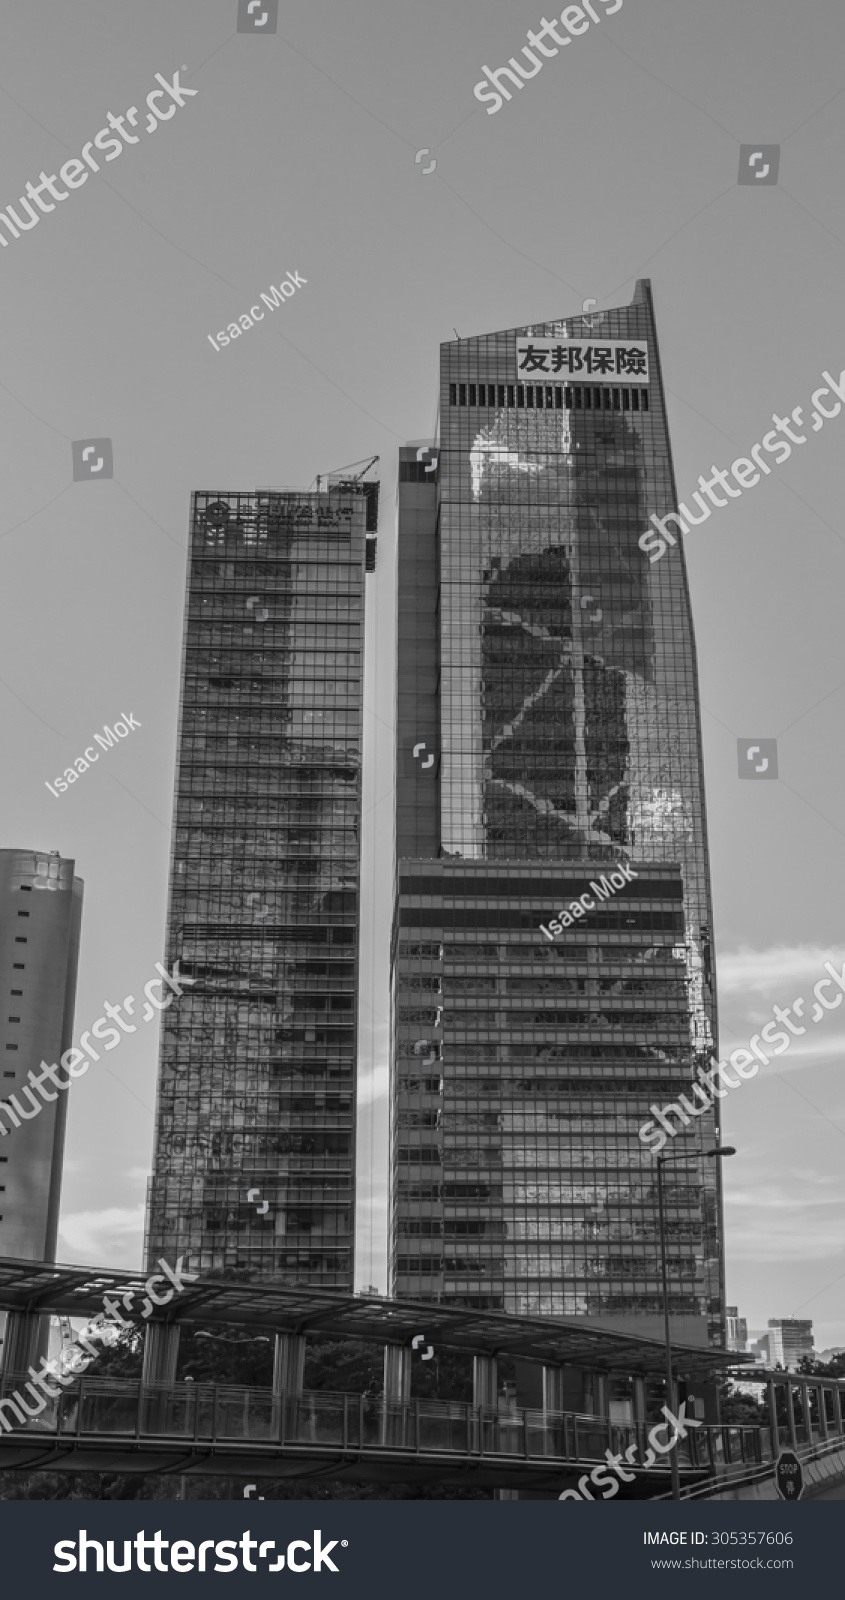 The aia central aig tower in black and white central for Hong kong architecture firms